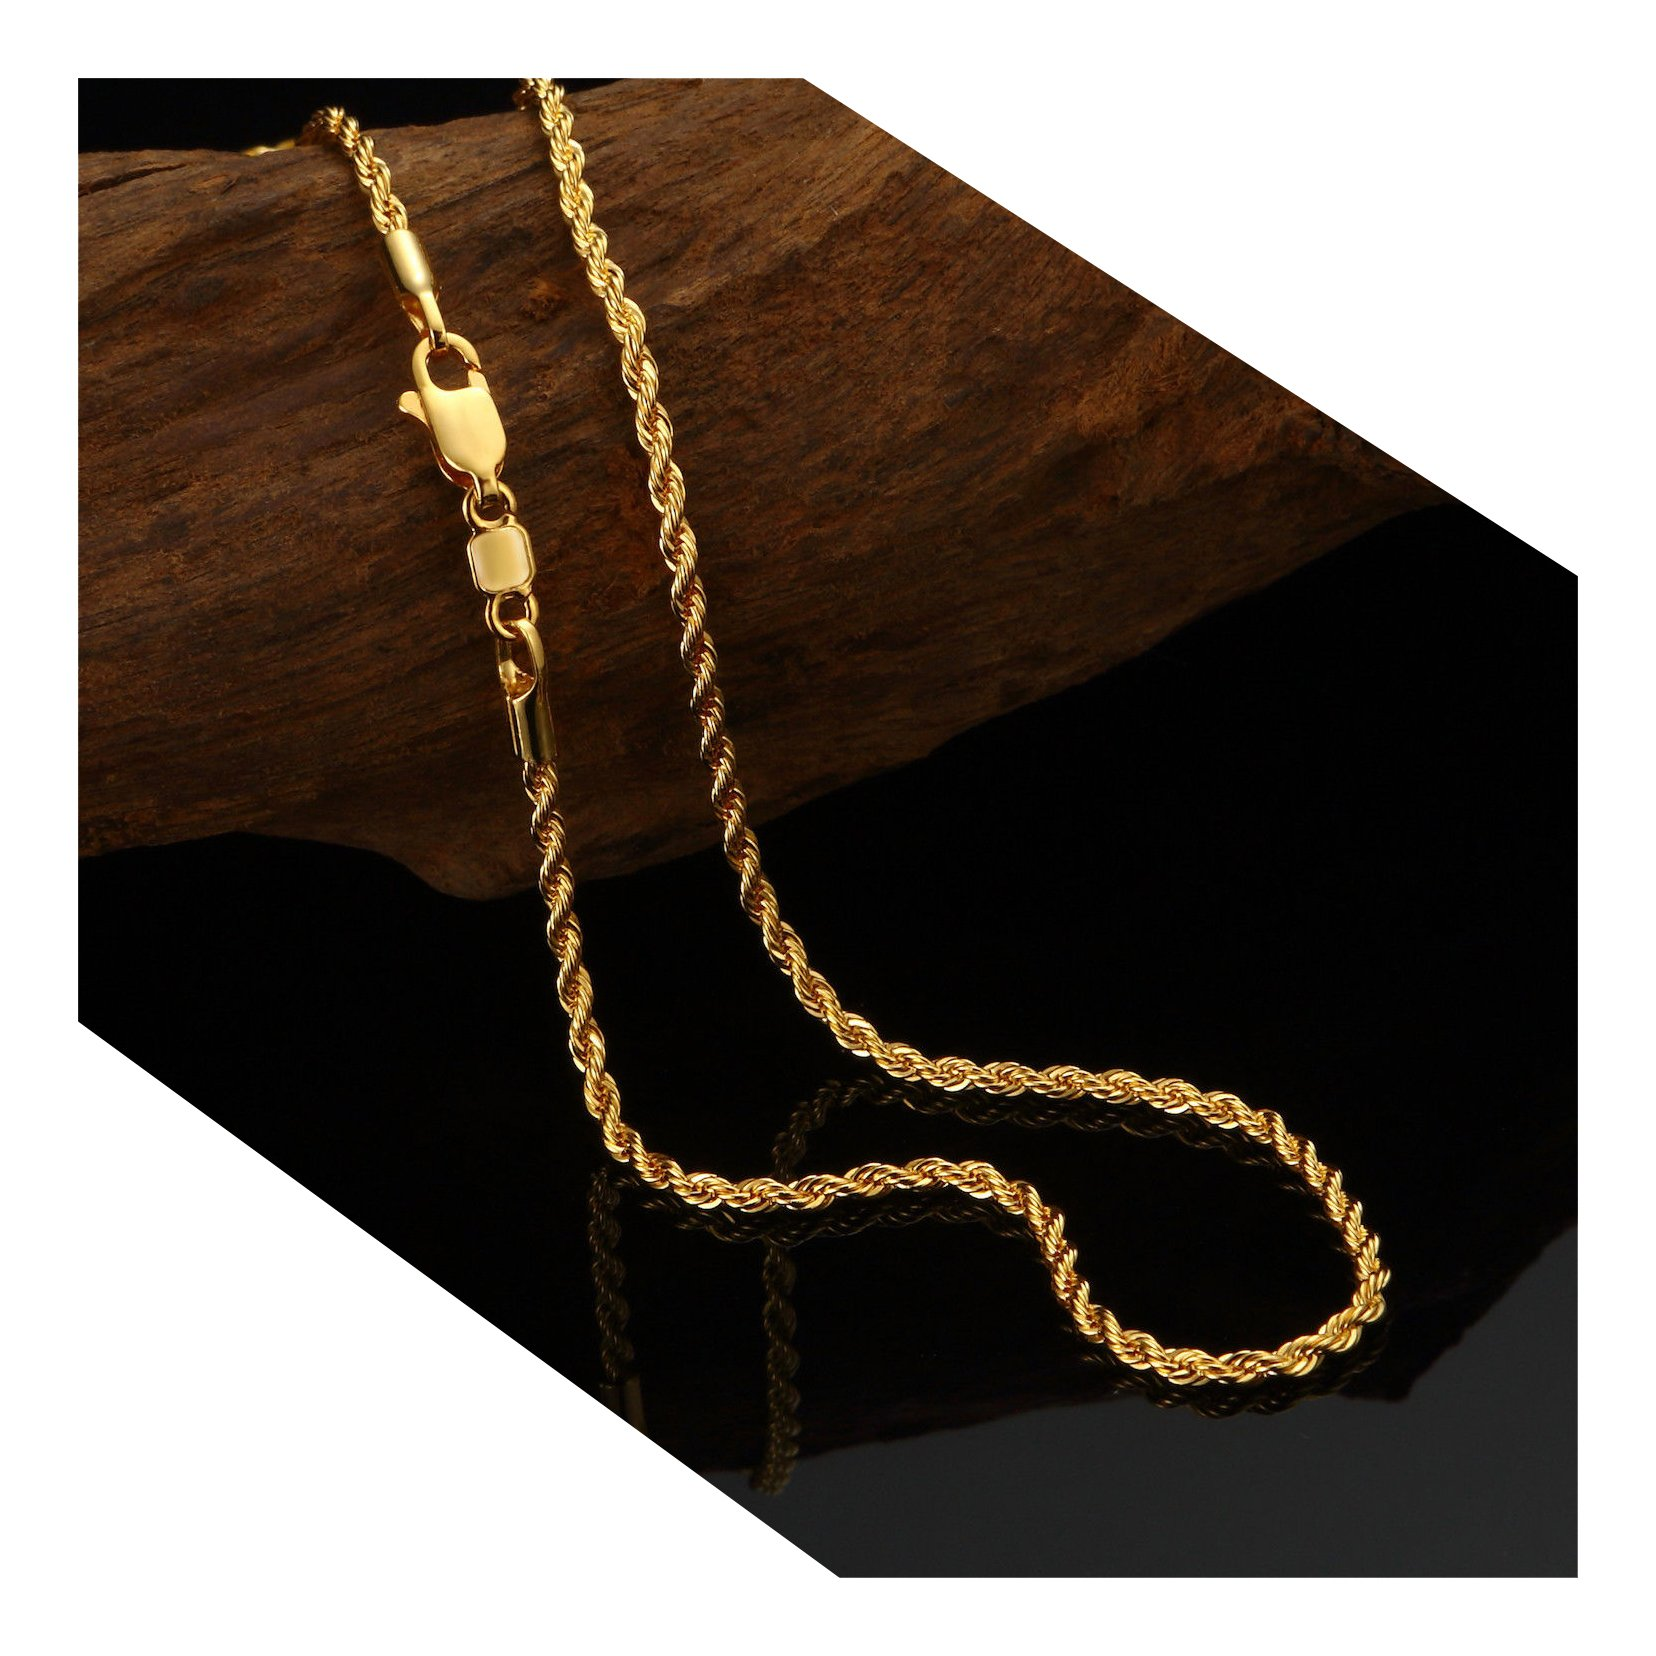 24k Yellow Gold Filled Men's 3MM Rope Chain Necklace Gold jewelry chain 24K yellow gold chain (24, Necklace)